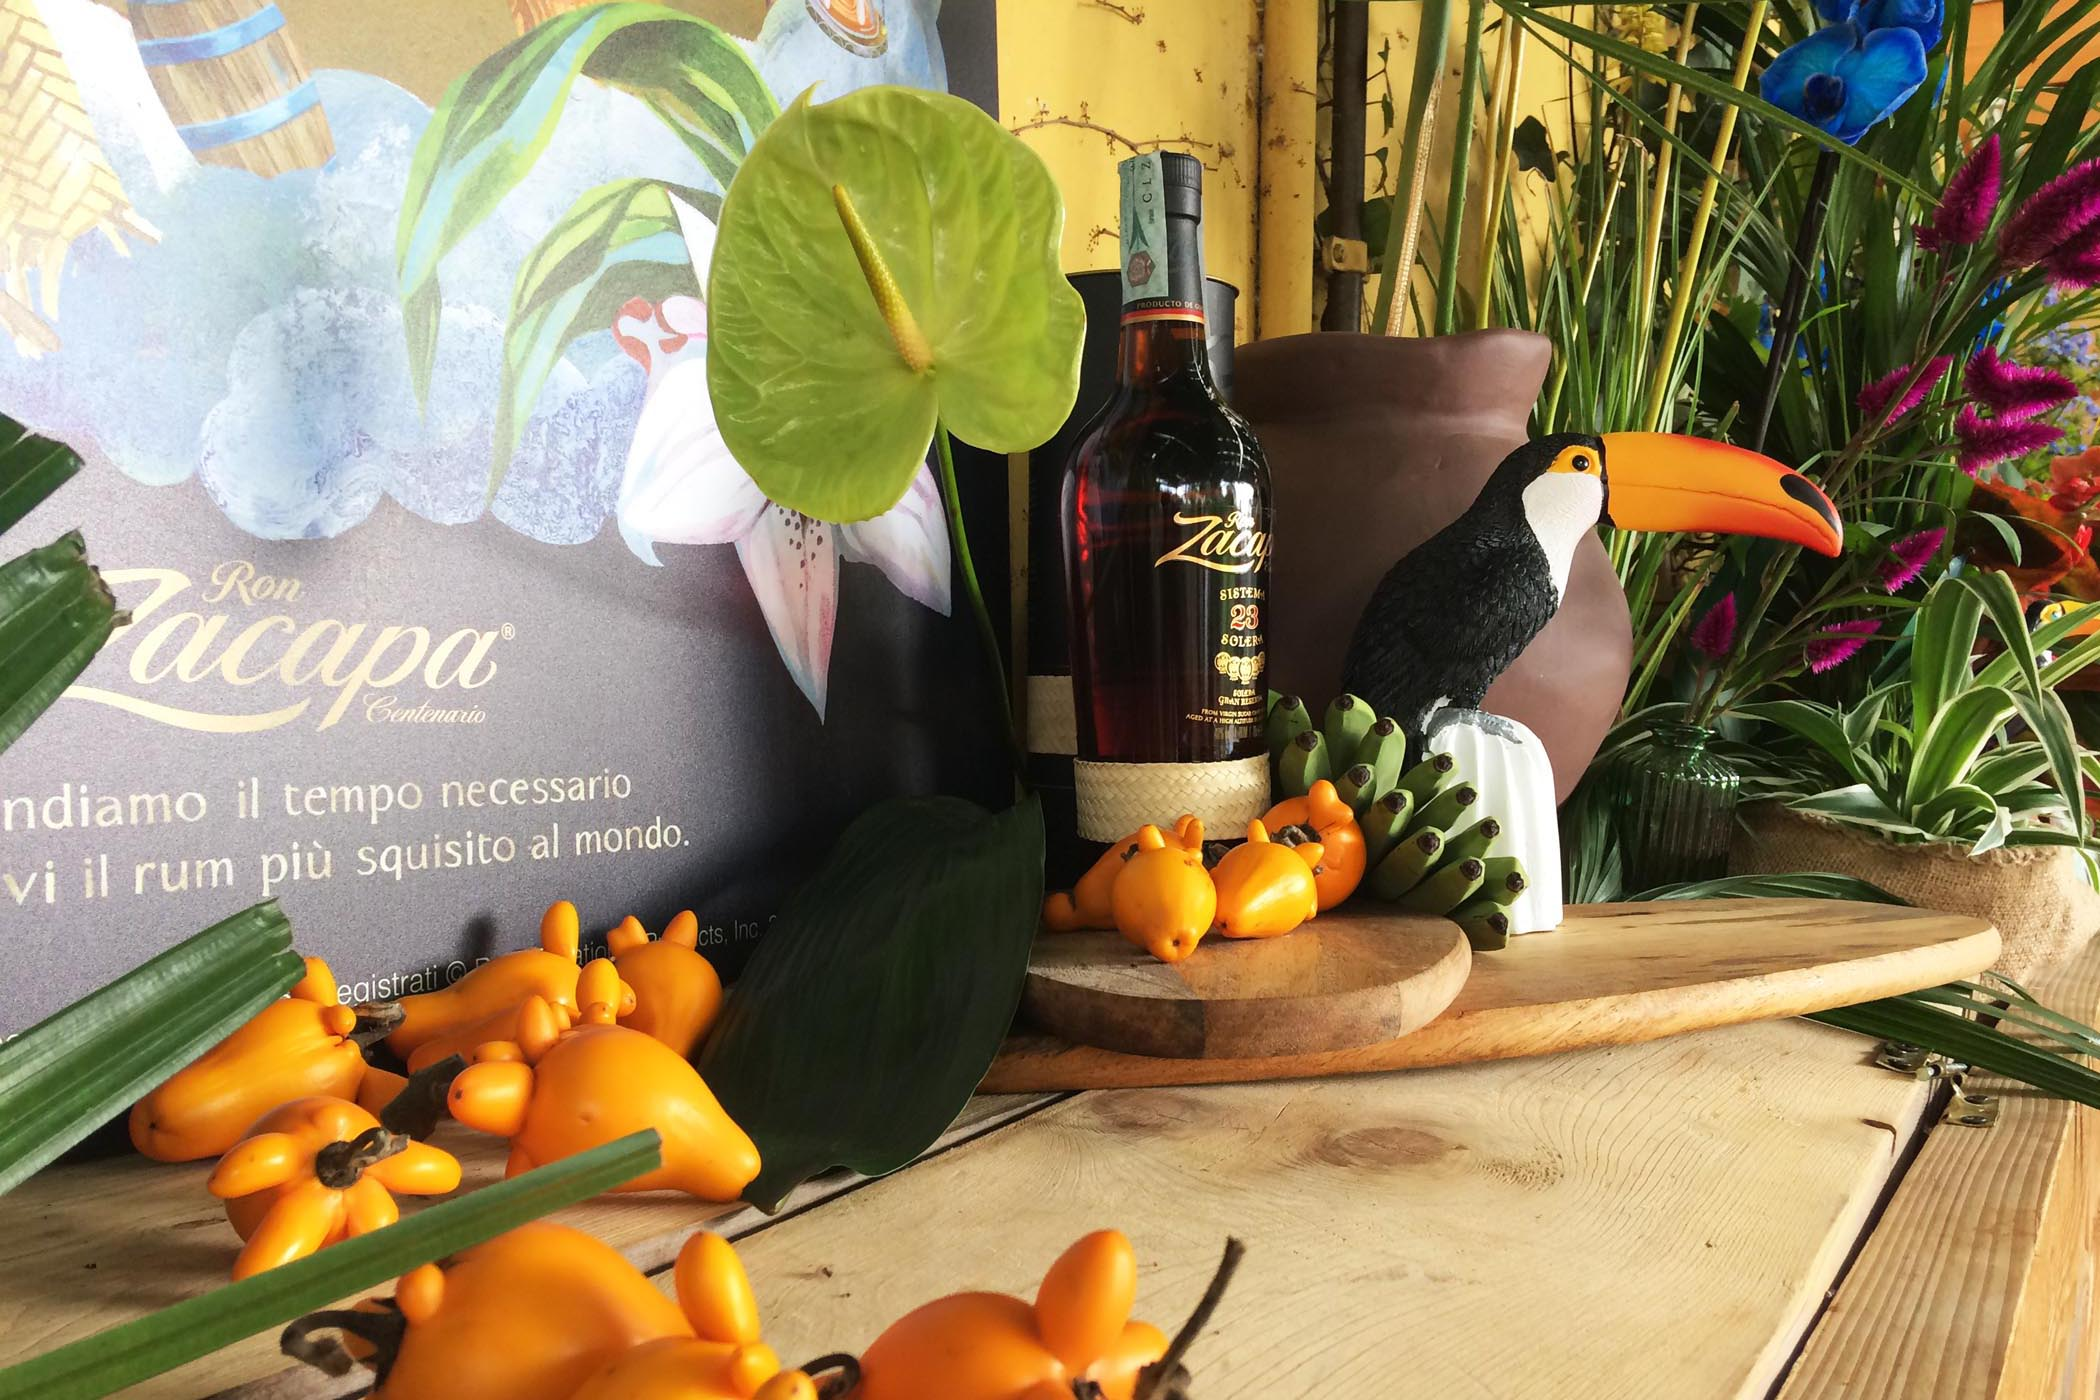 Zacapa Ron Alchemy Set Styling Tropical Mexiacan Erba Brusca Influencers and blogger Dinner 01